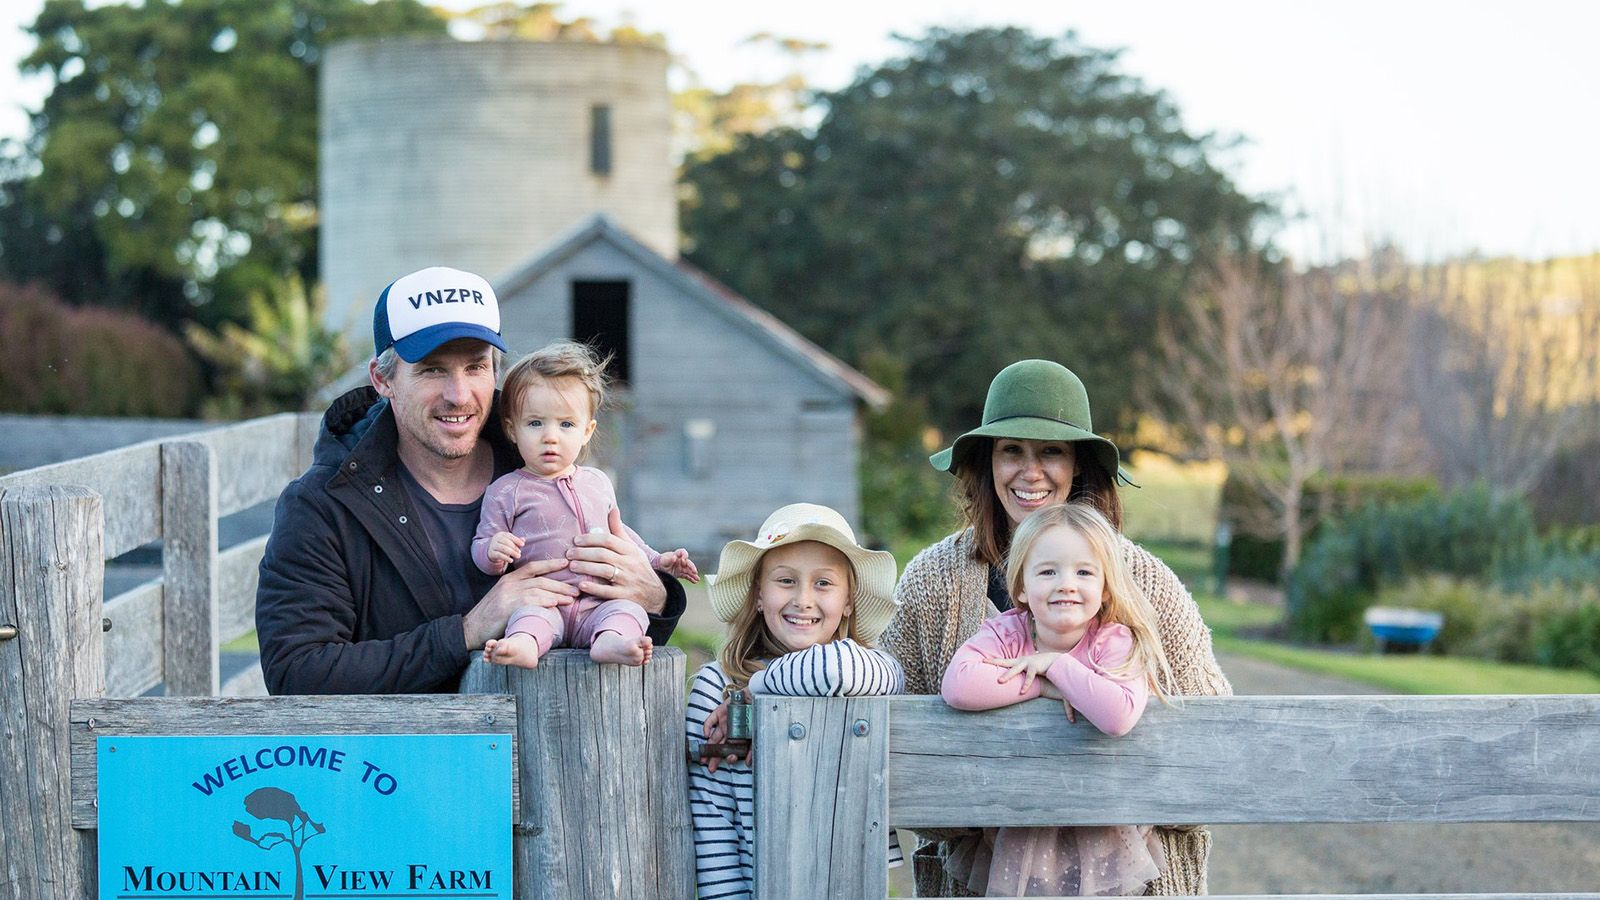 A young family of five standing behind a farm style fence banner image